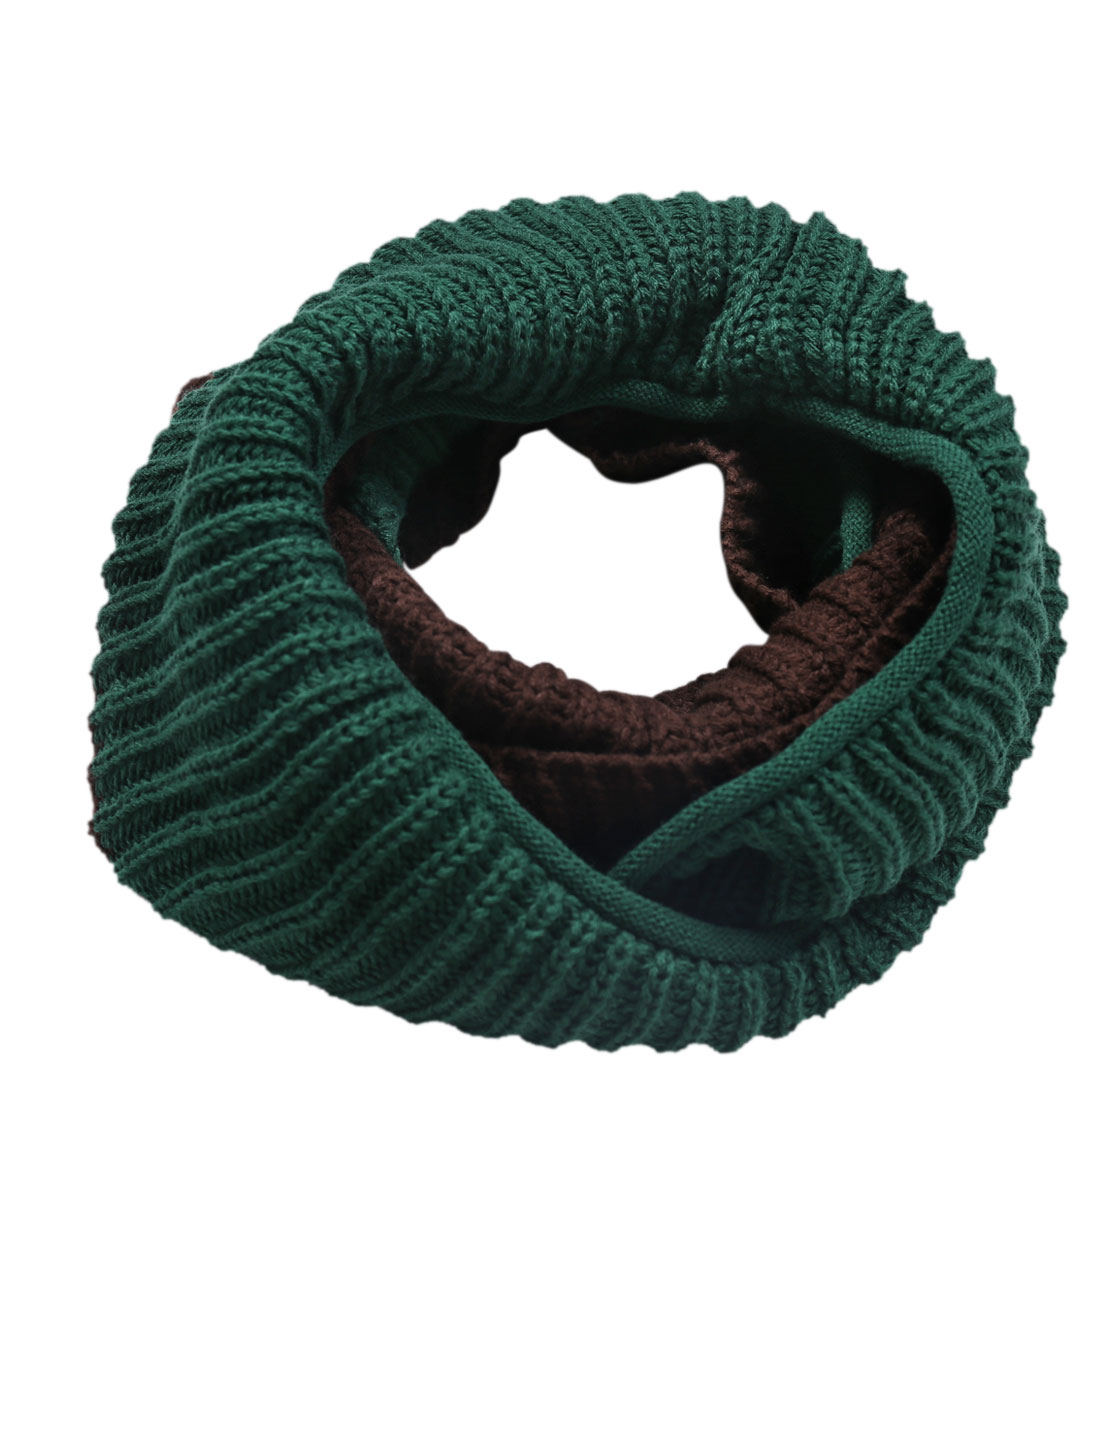 Color Blocking Knitted Leisure Neck Warmer for Men Green Coffee